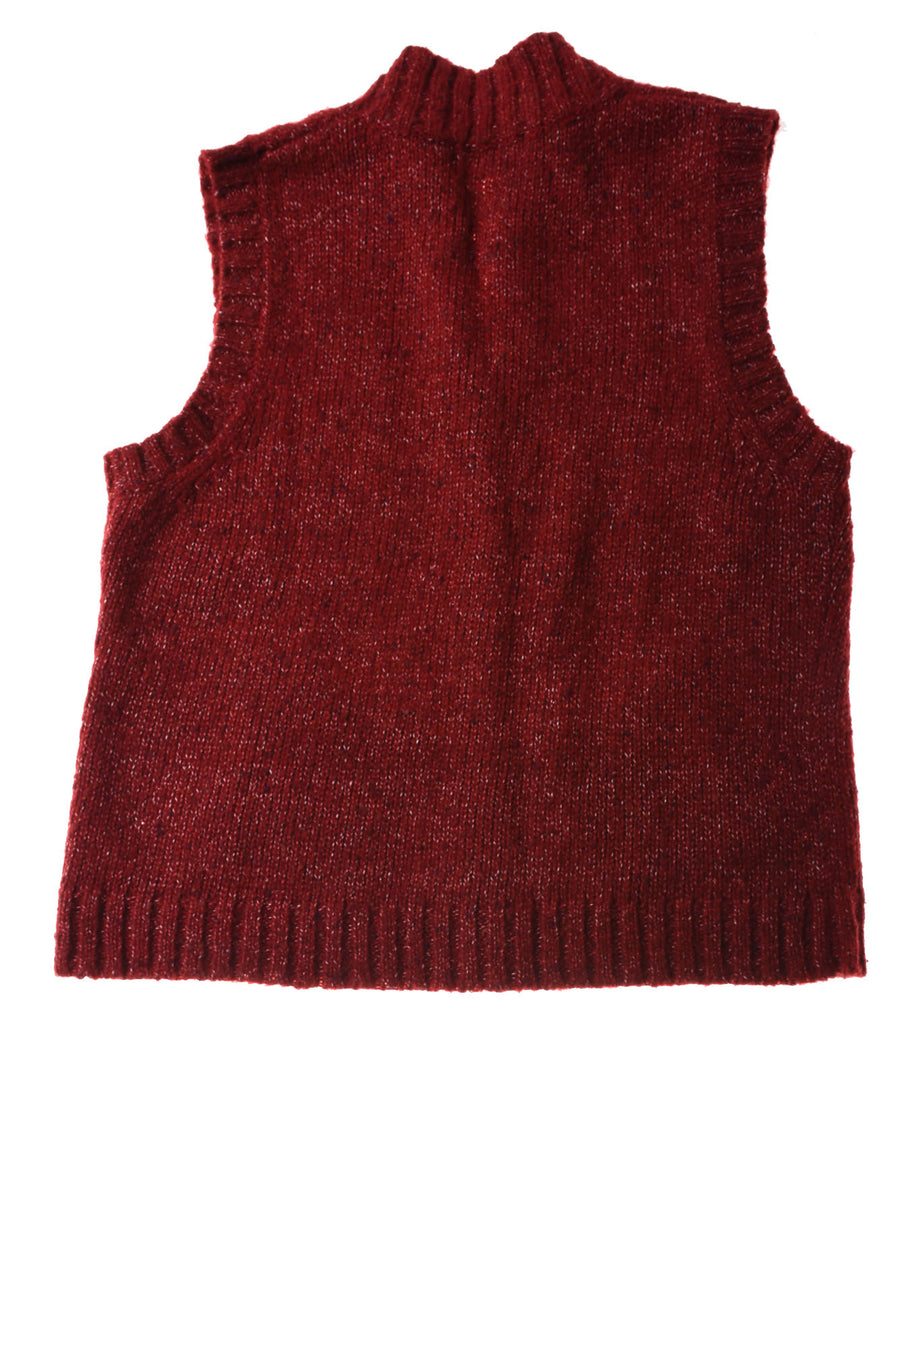 USED Orvis Women's Vest Medium Red